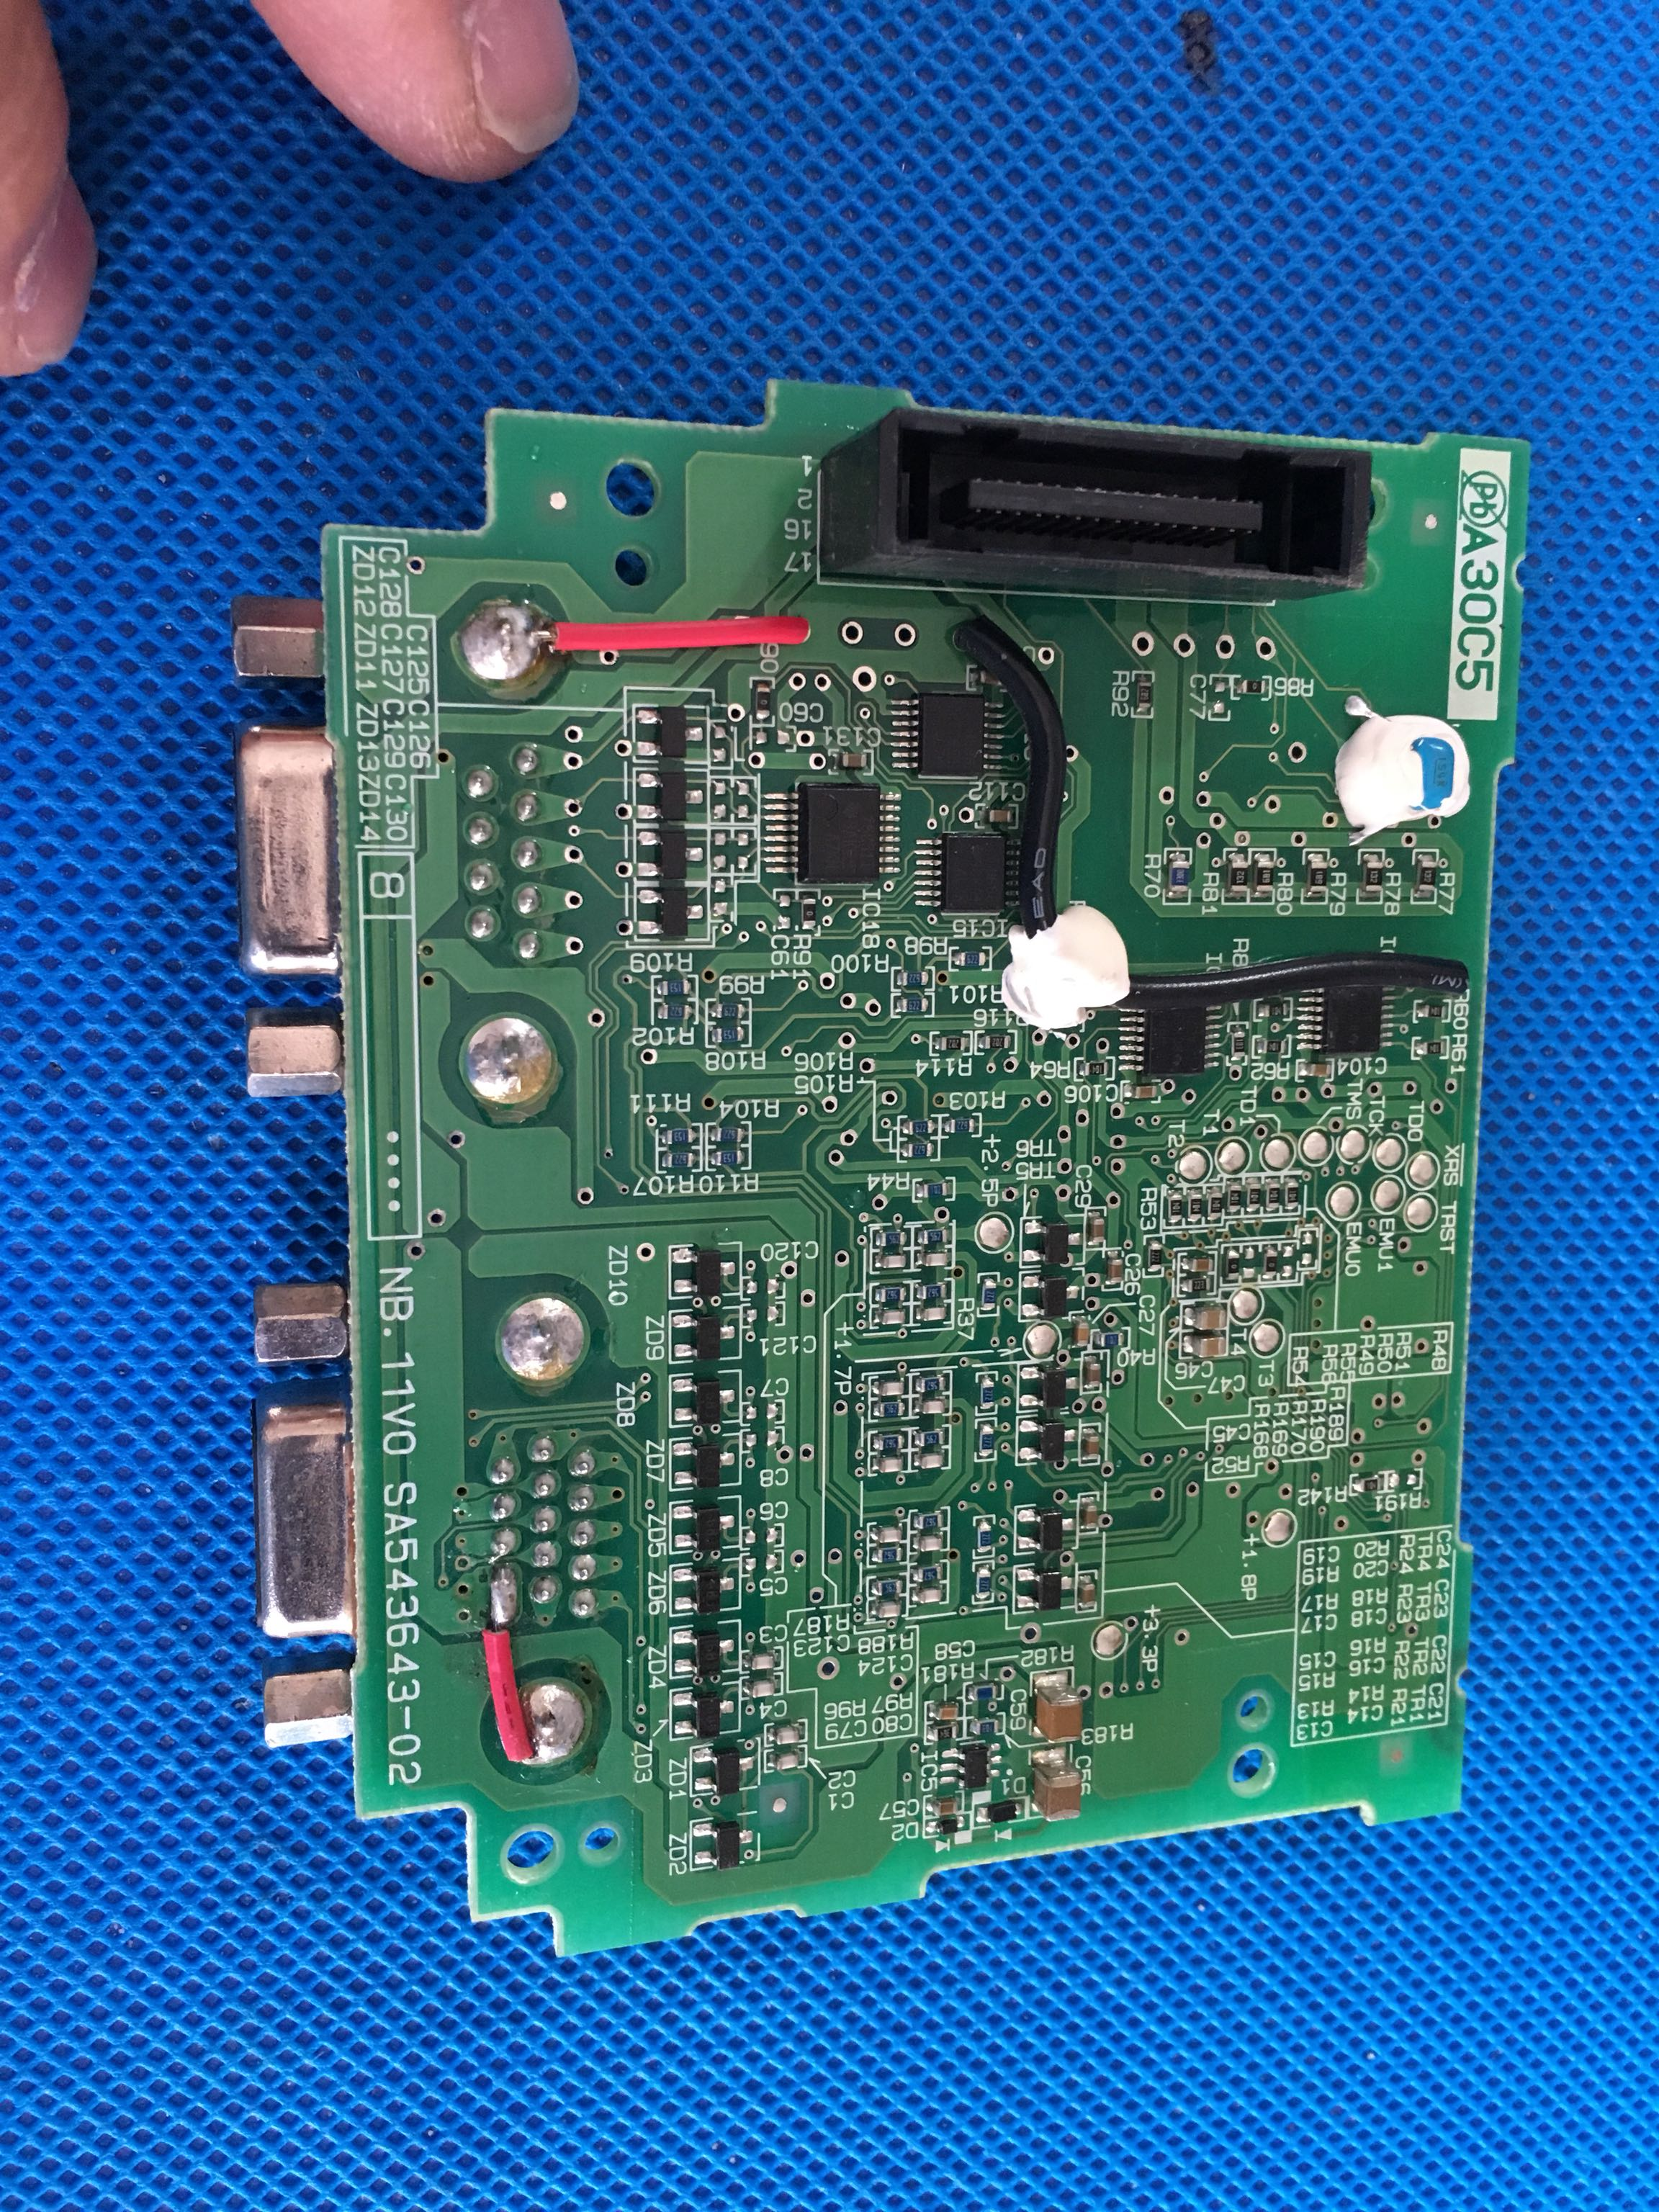 Used Non-new SA543643-02 And OPC-LM1-PR1 And PA1 Fuji Inverter Synchronous Control Card PG Card